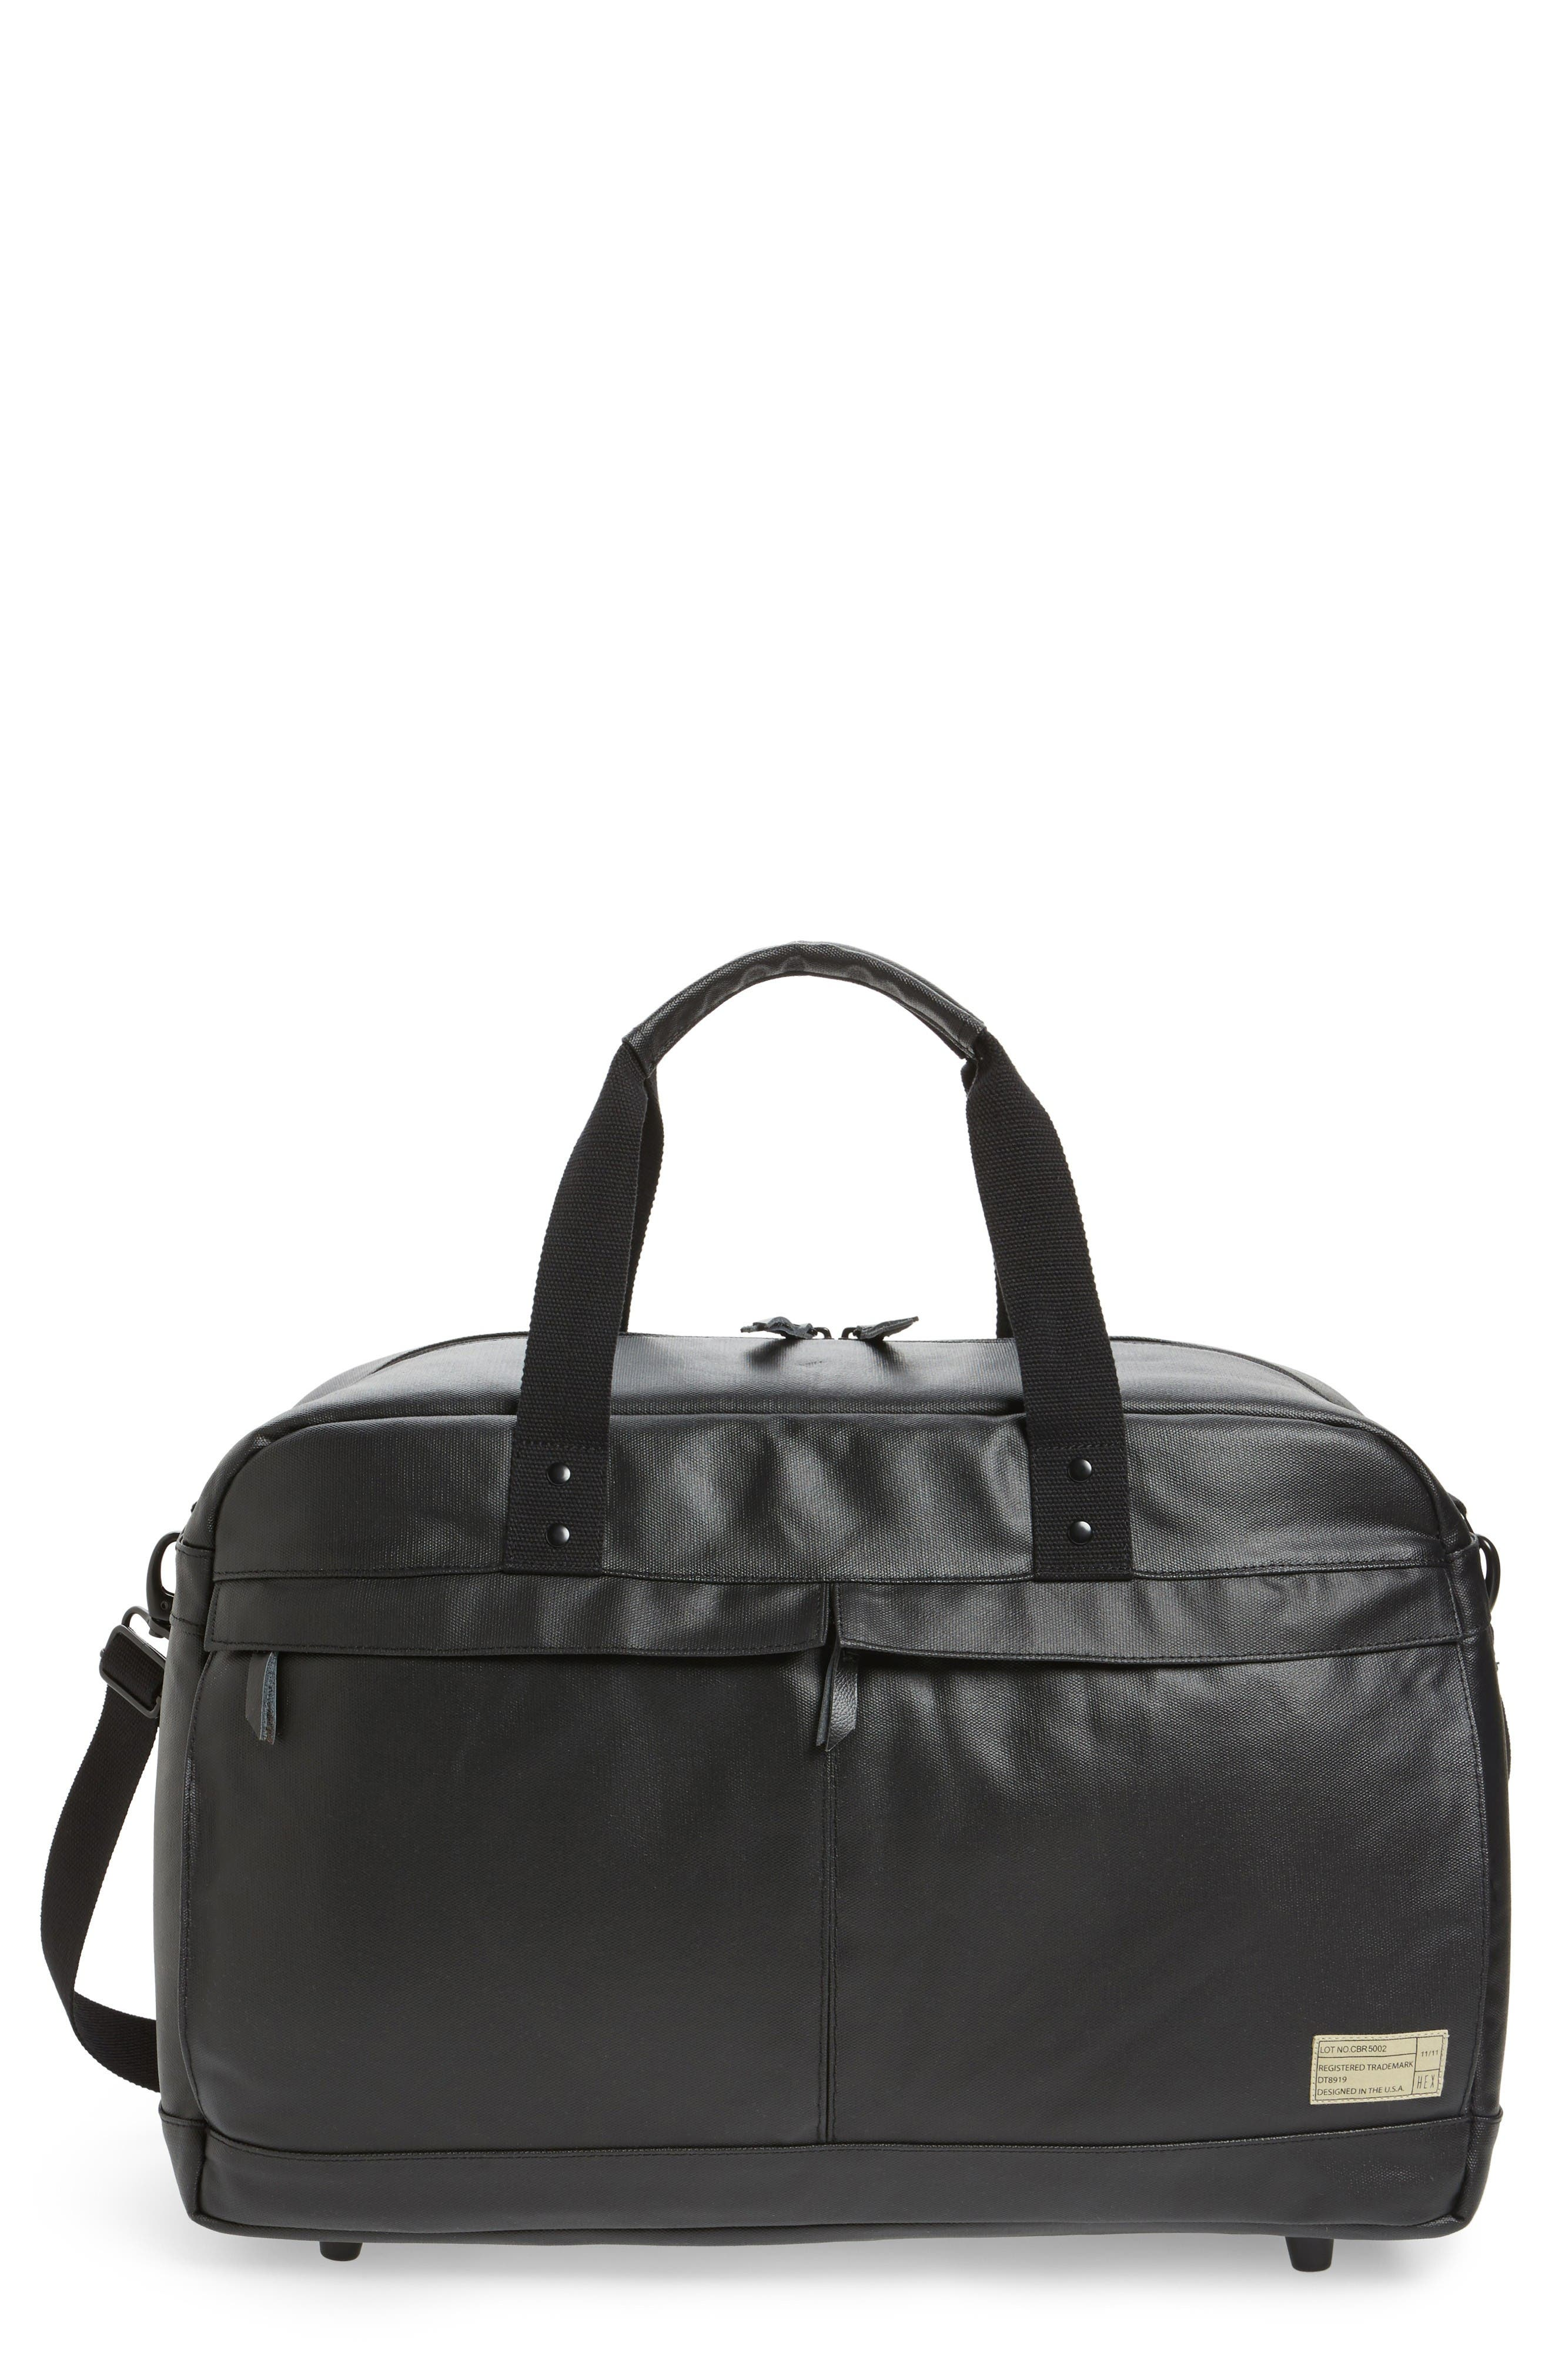 Main Image - HEX Calibre Duffel Bag